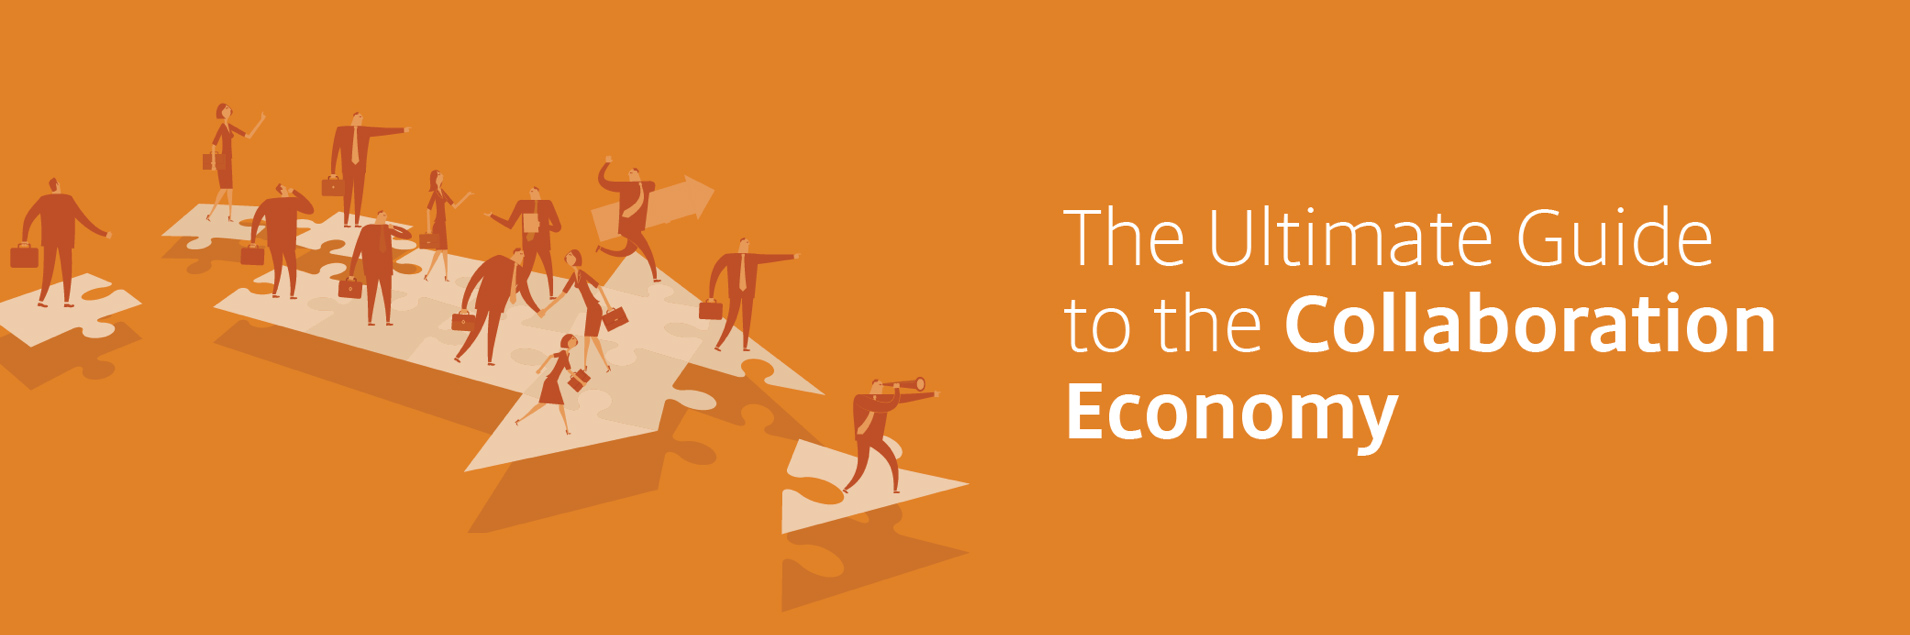 The Ultimate Guide to the Collaborative Economy